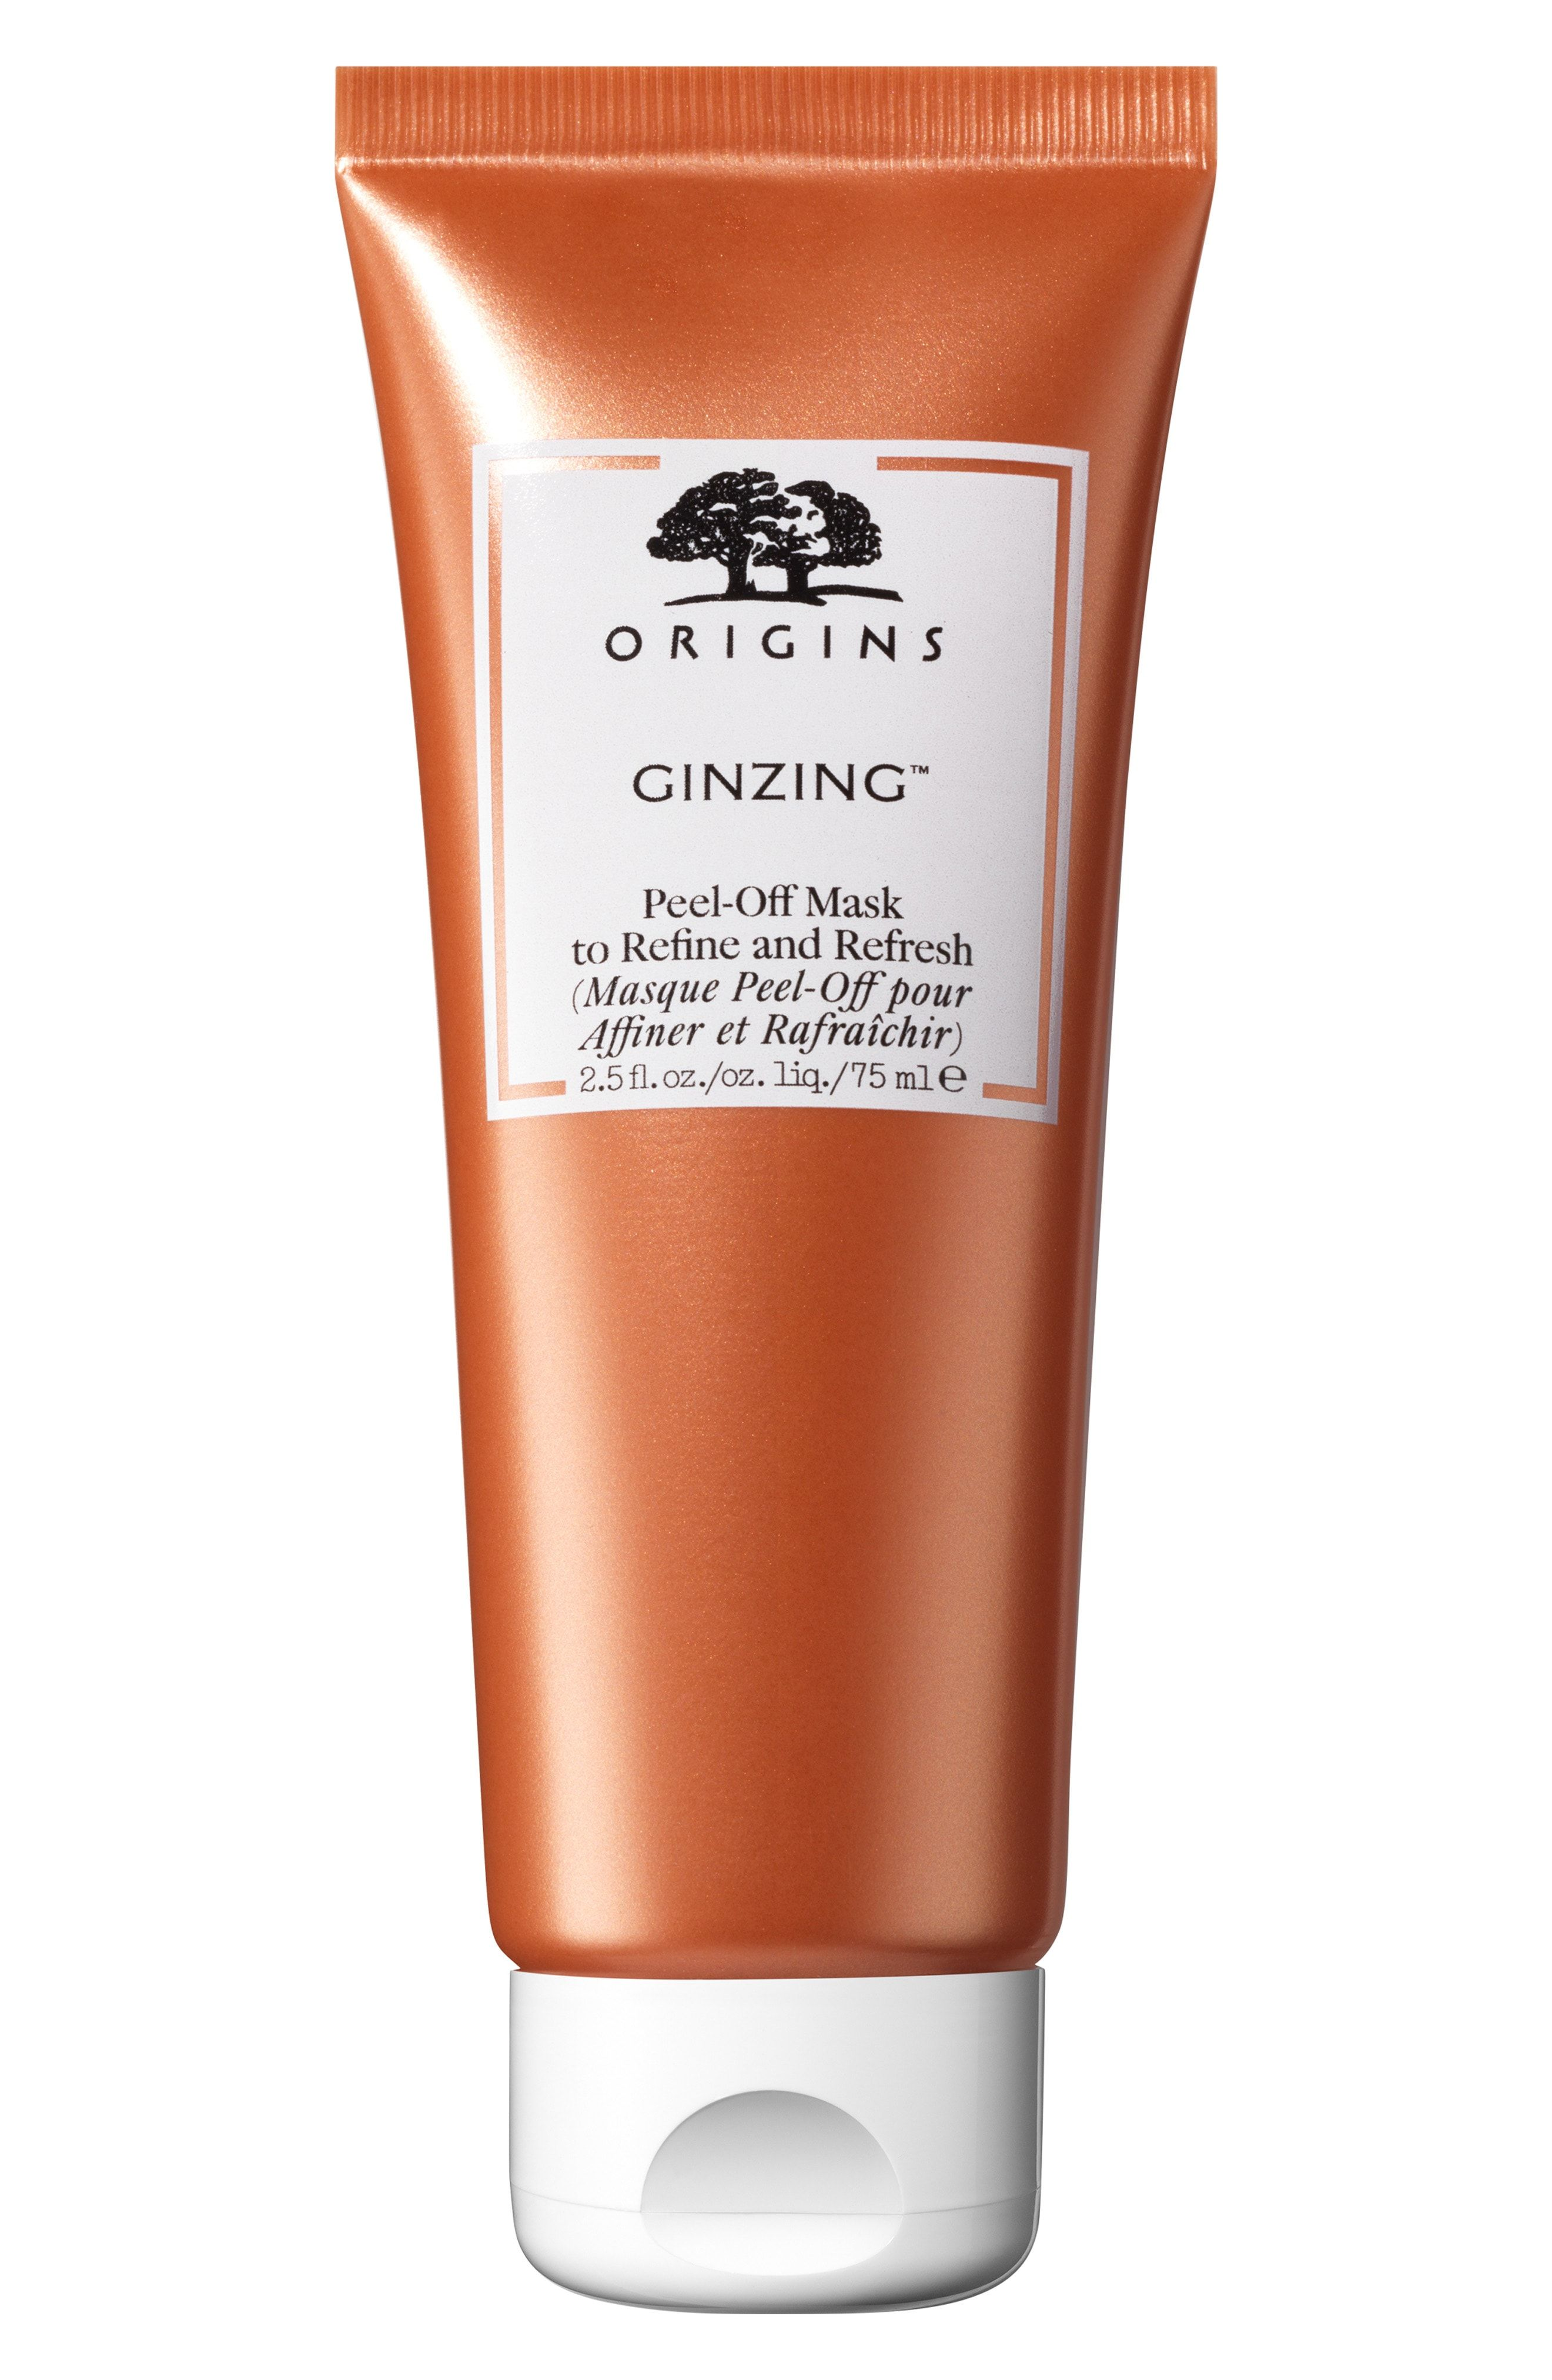 GinZing Peel-Off Mask Origins nordstrom.com $26.00 SHOP NOW Formulated with a refreshing mix of  coffee beans, panax ginseng, and fruit acid complex, Origins's GinZing Peel-Off Mask acts as the cure-all for dull, lifeless skin. The mask helps to smooth skin and shrink pores.